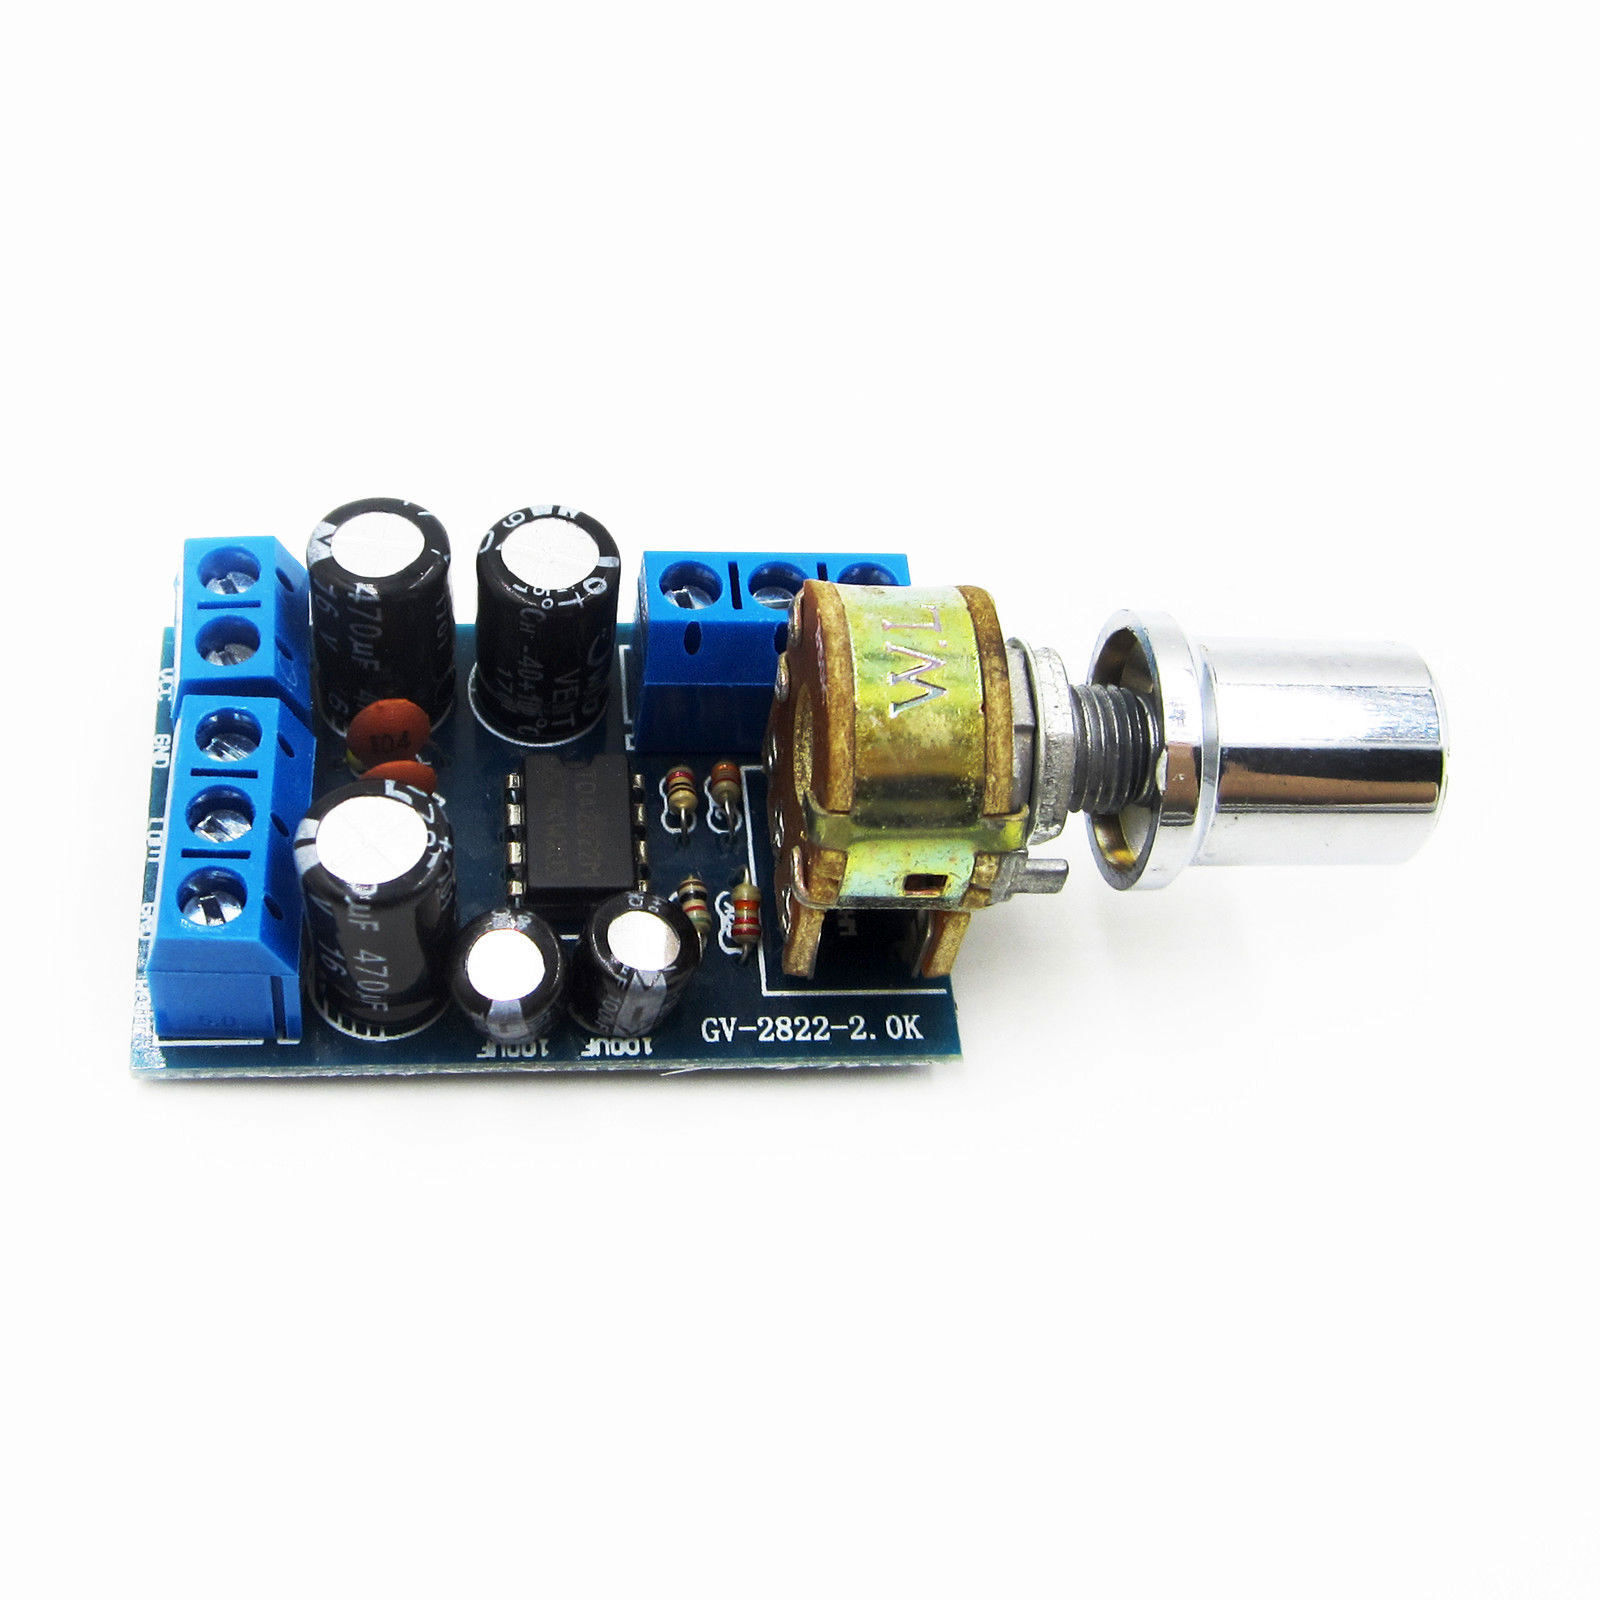 Tda2822m 1w2 Stereo Mini 20 Channel Audio Power Amplifier Board Dc Tda2822 Circuit 5v 12v Car 1 Of See More